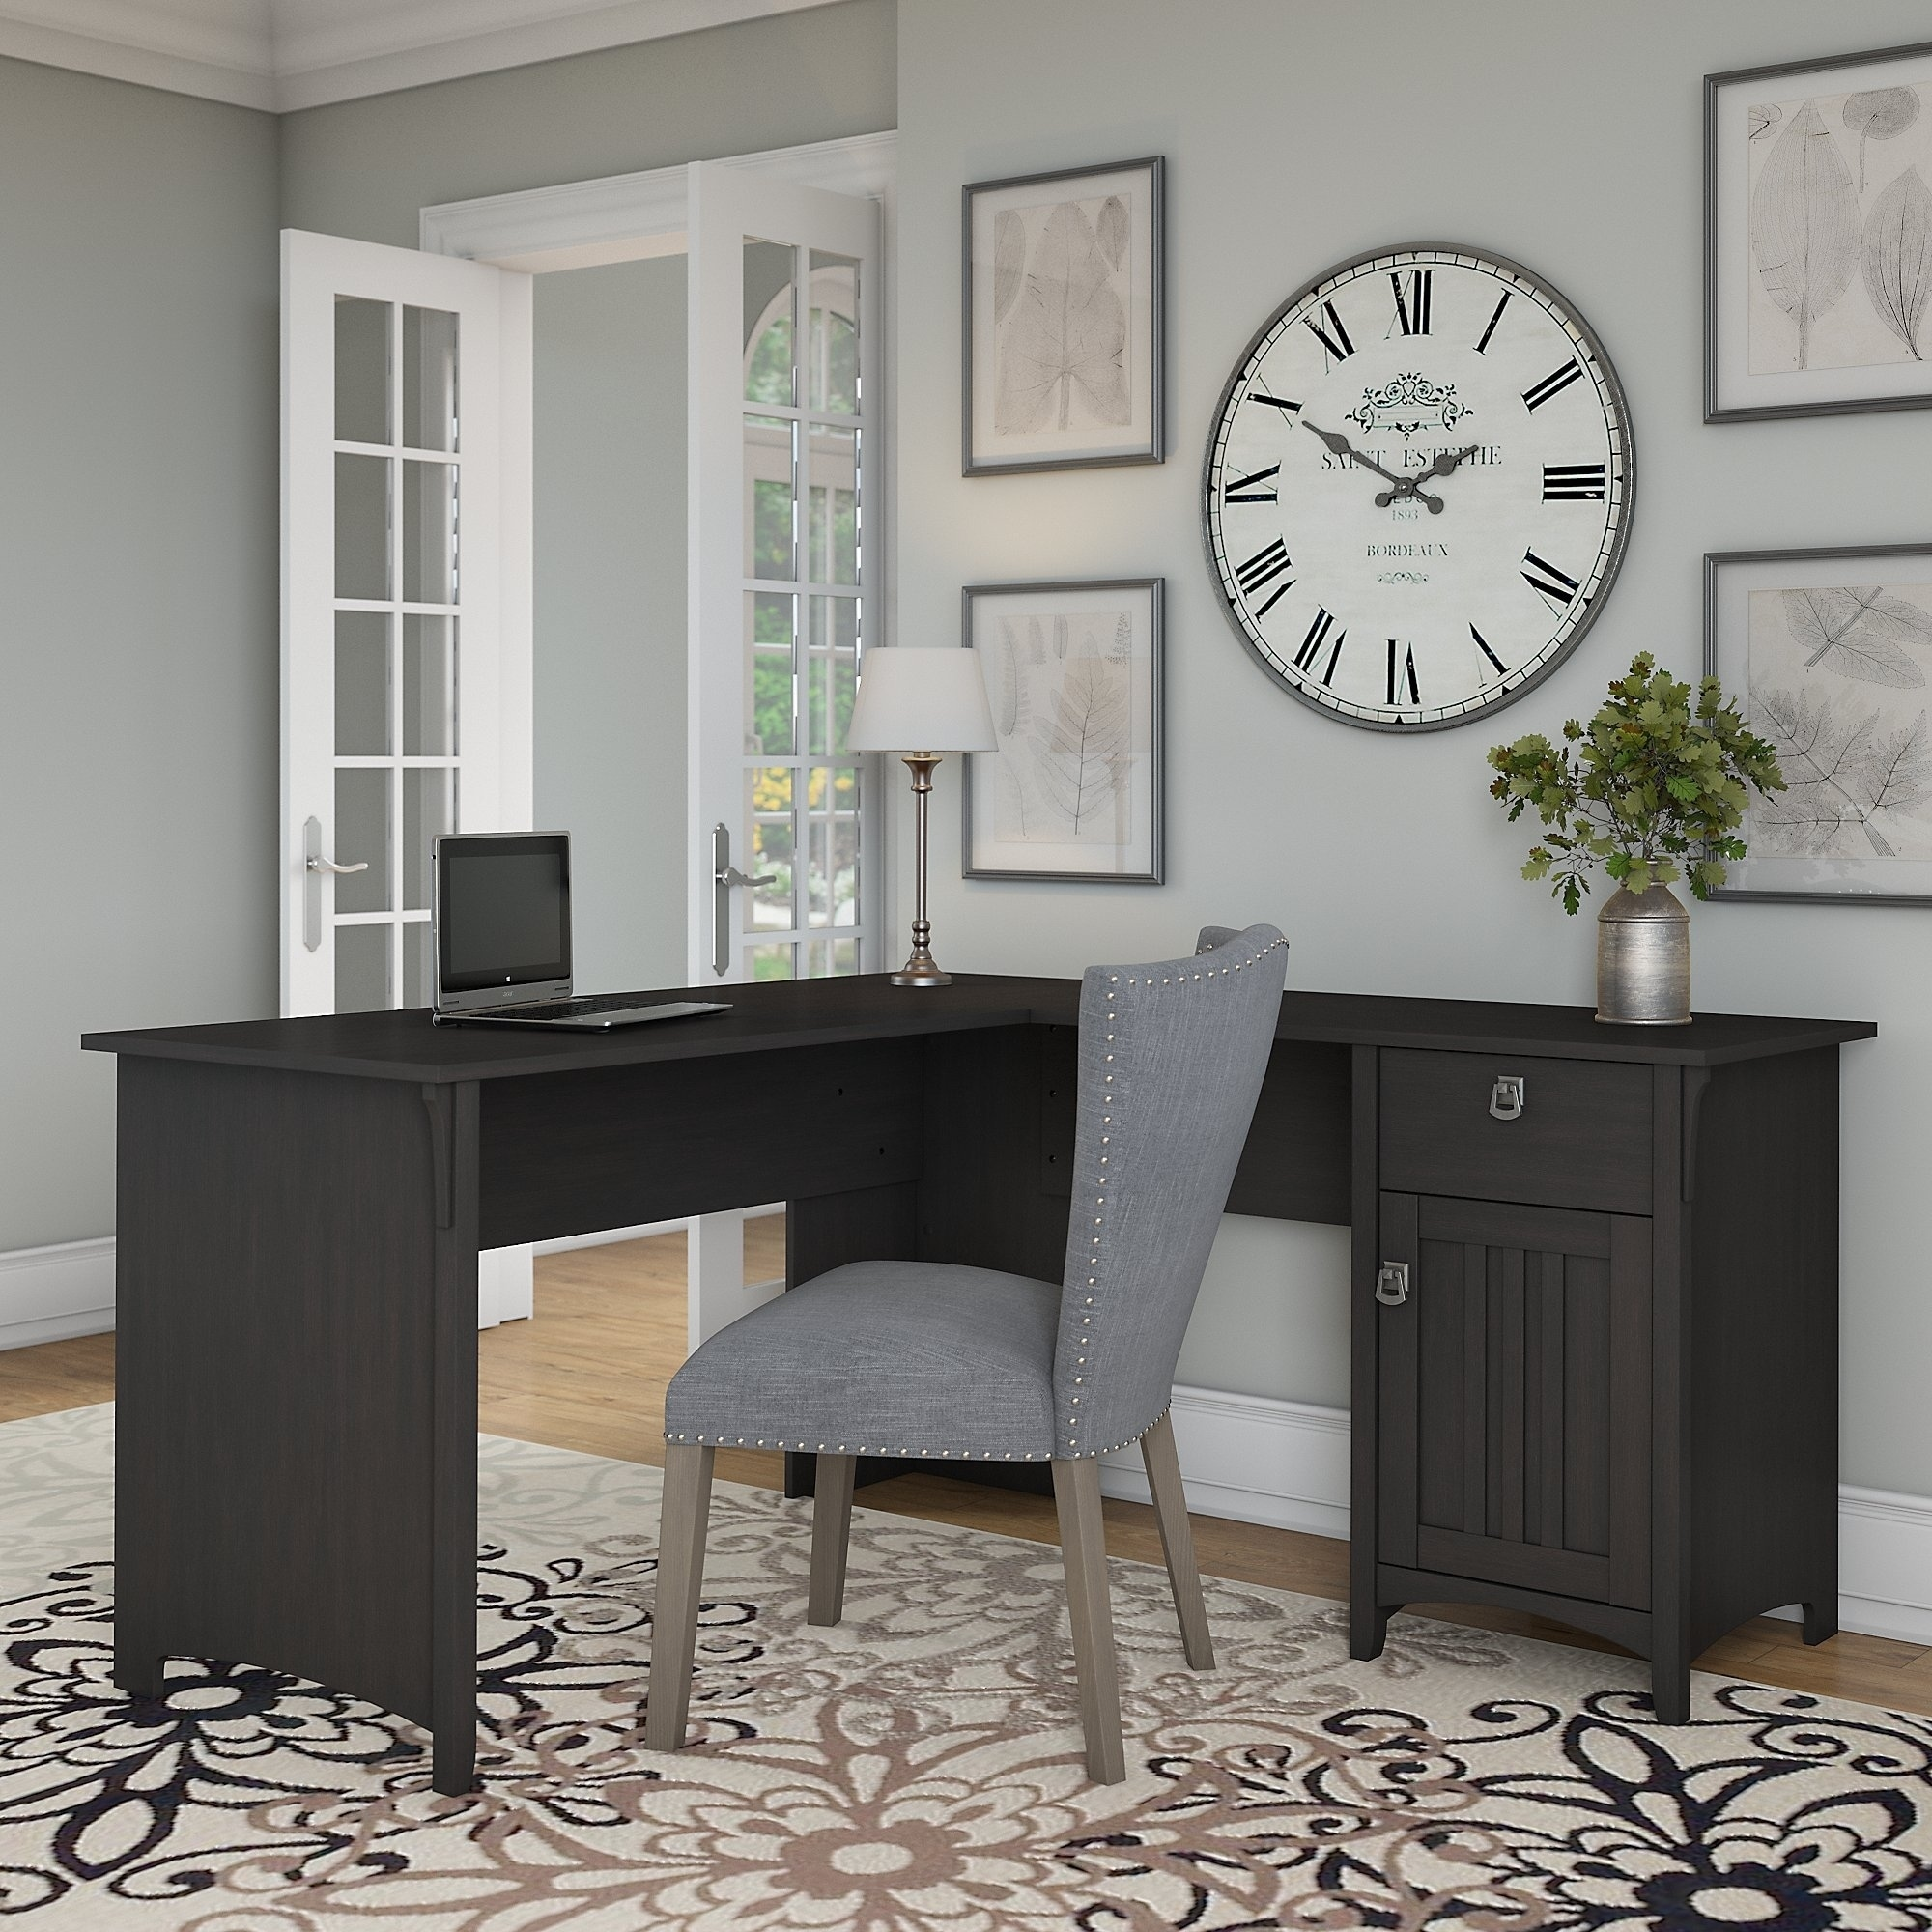 L Shaped Desk With Drawers Storage Home Office Furniture ...